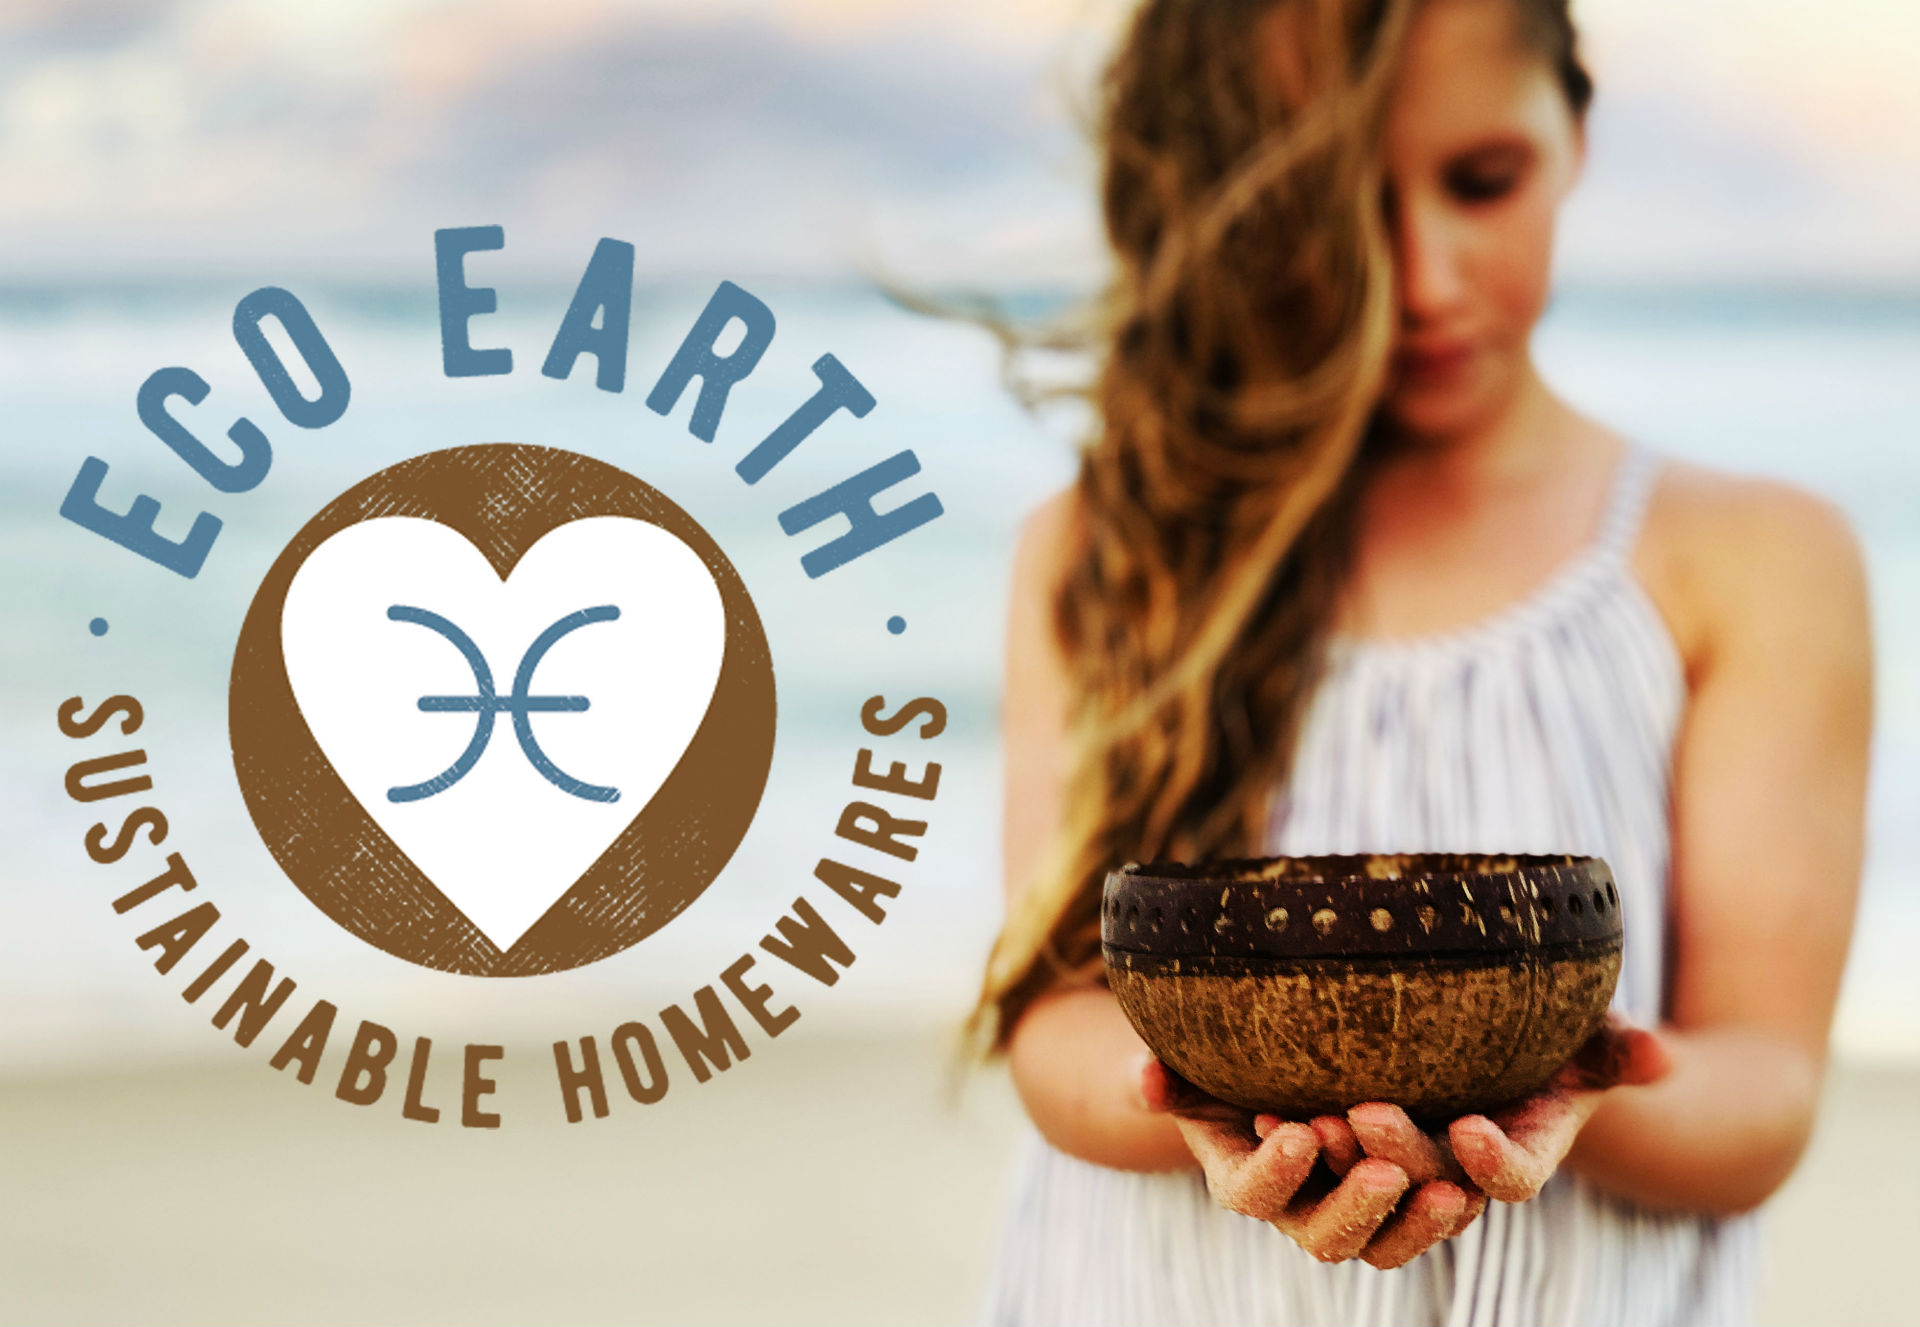 Eco Earth Homewares